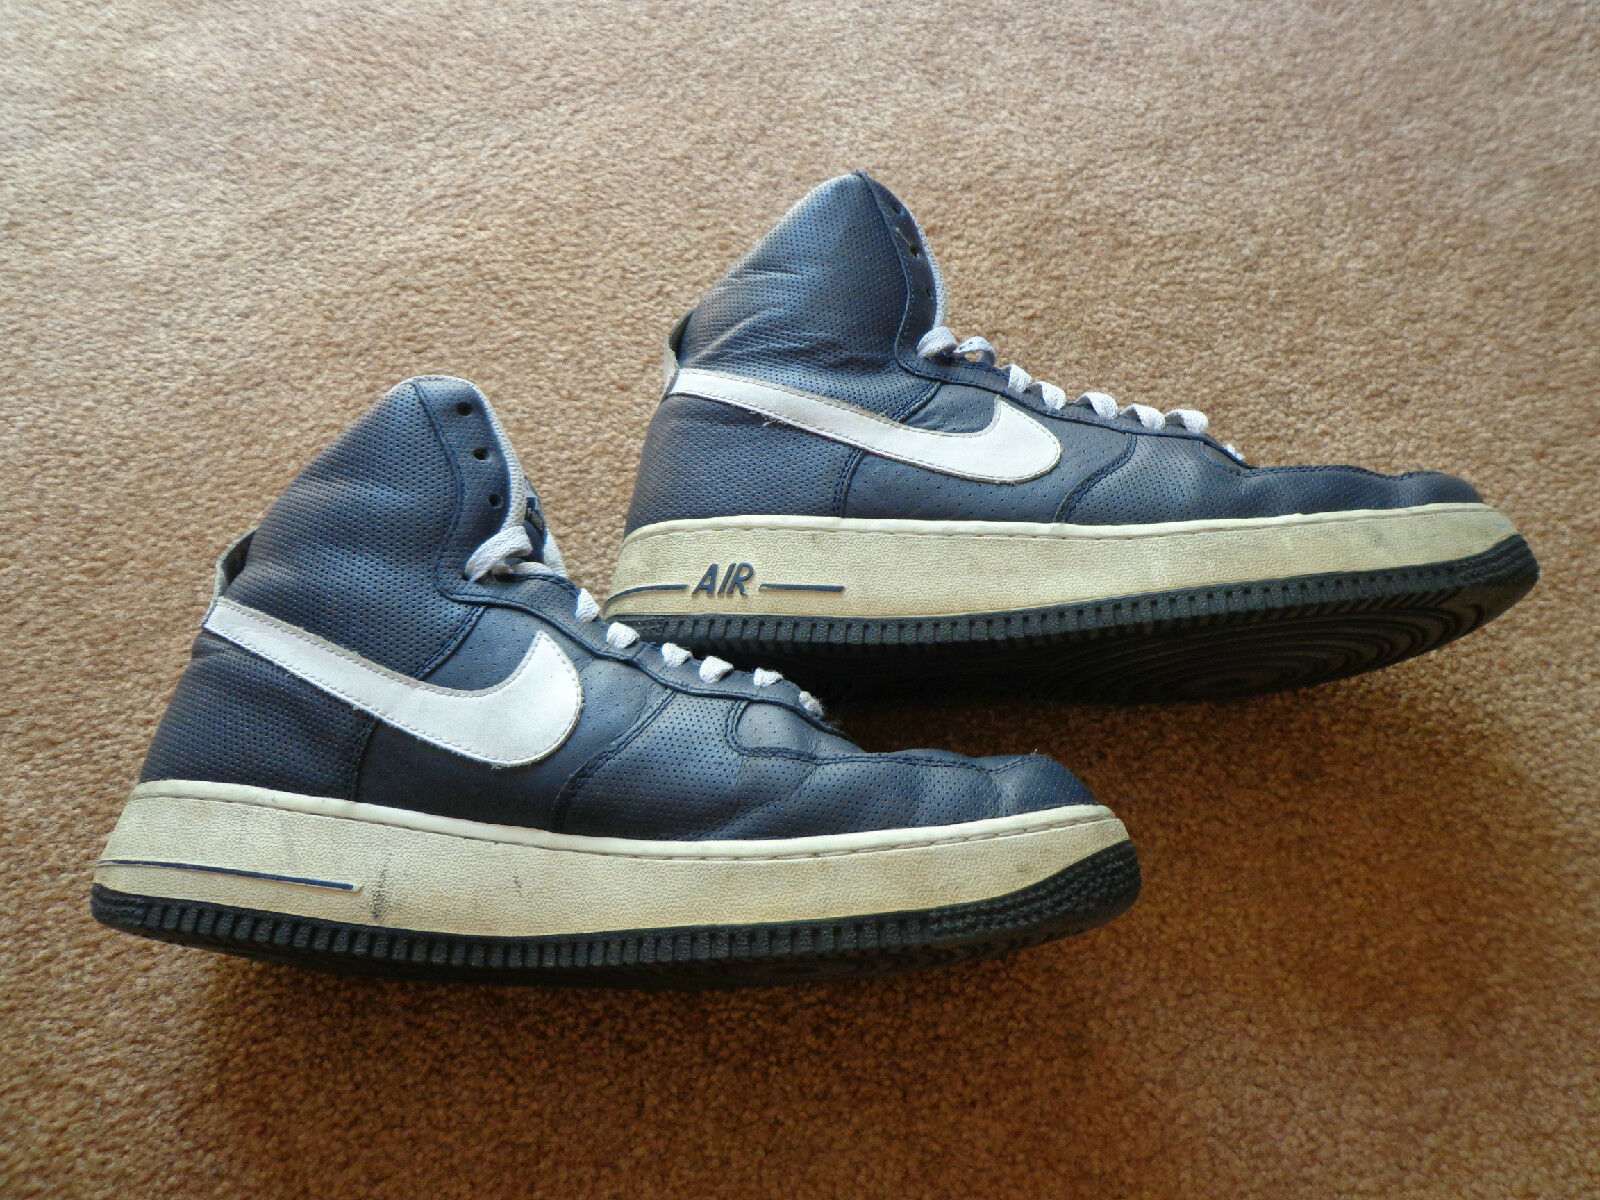 NIKE AIR FORCE 1 HIGH 07 315121-402 Price reduction Great discount